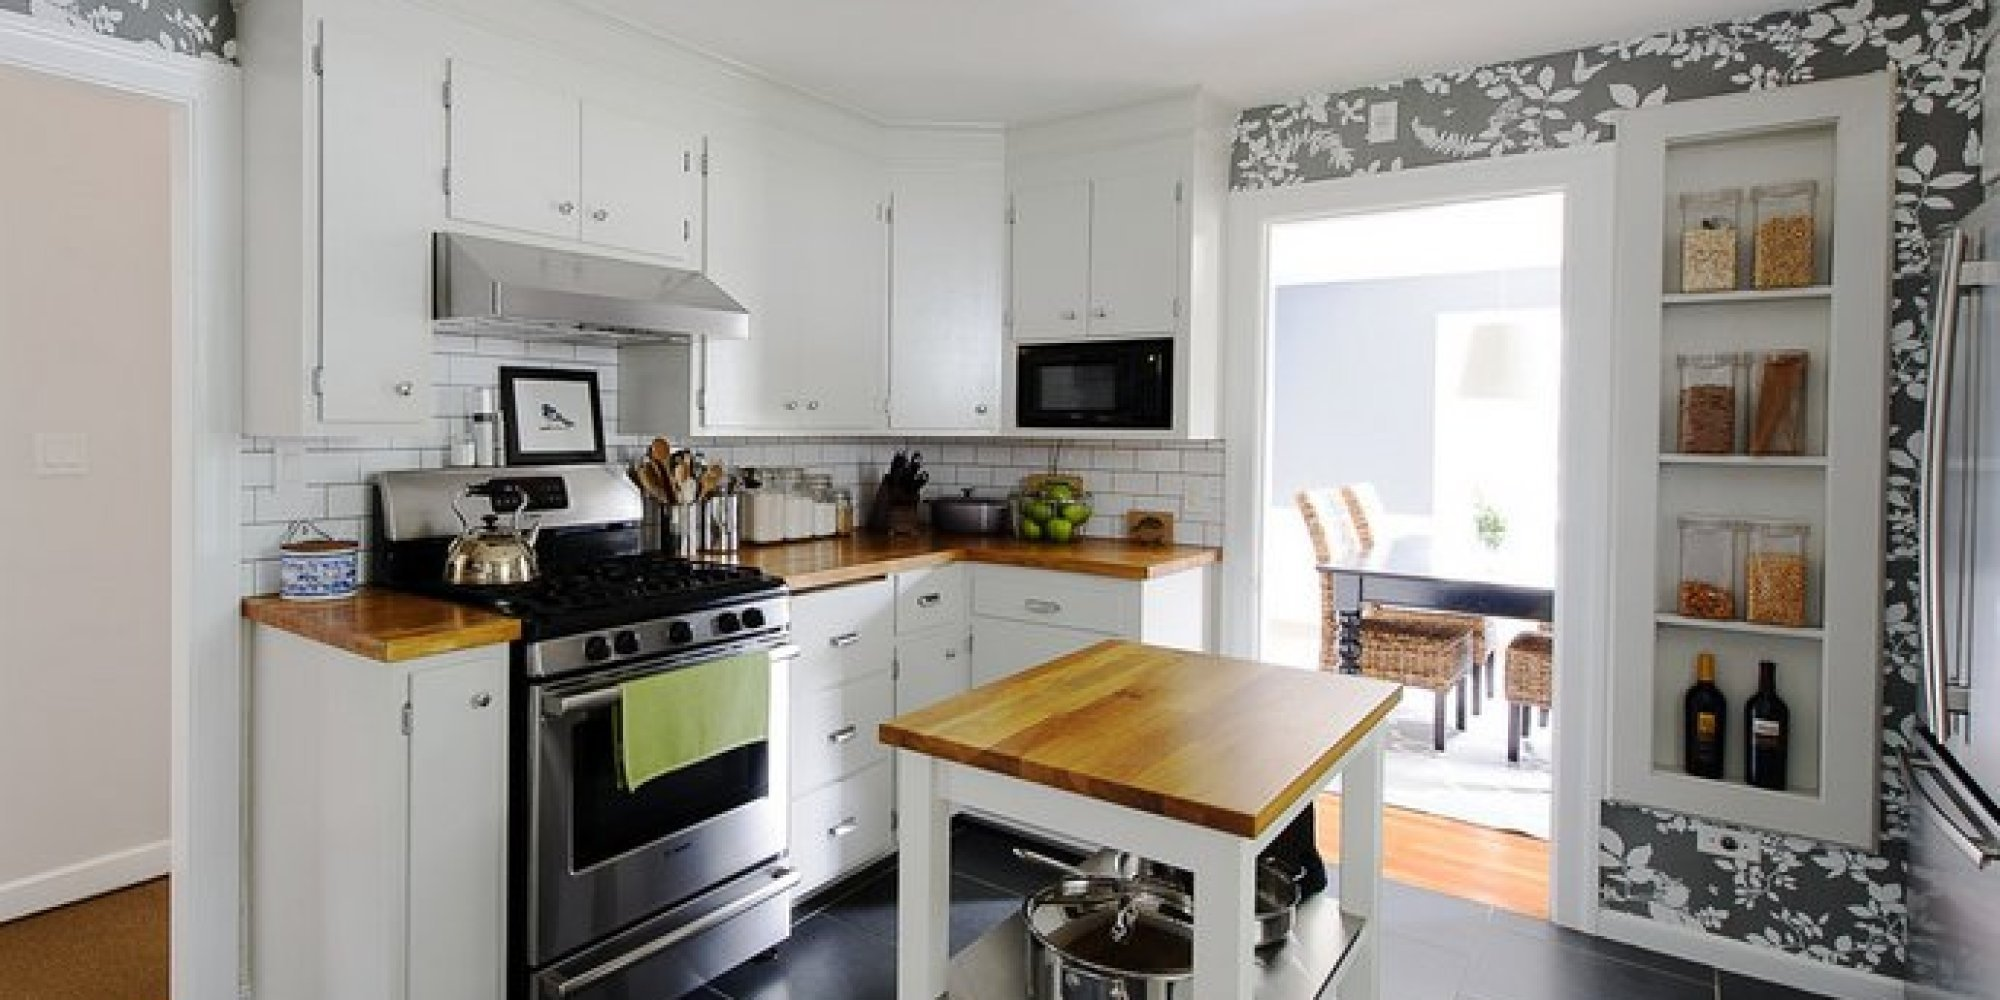 10 Attractive Kitchen Ideas On A Budget 19 inexpensive ways to fix up your kitchen photos huffpost 2 2020